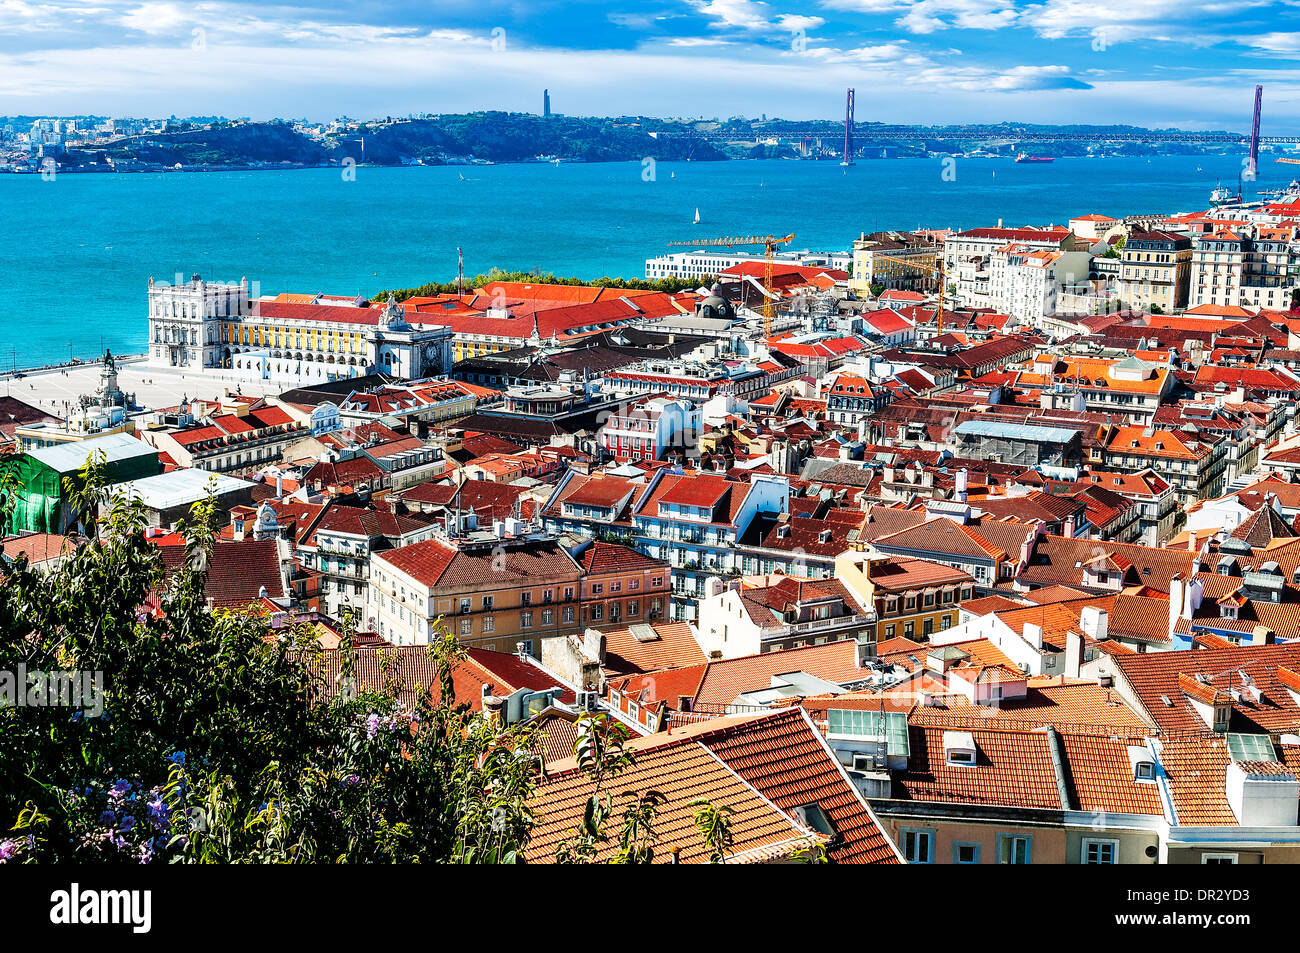 Bird view of central Lisbon with colorful houses and orange roofs - Stock Image